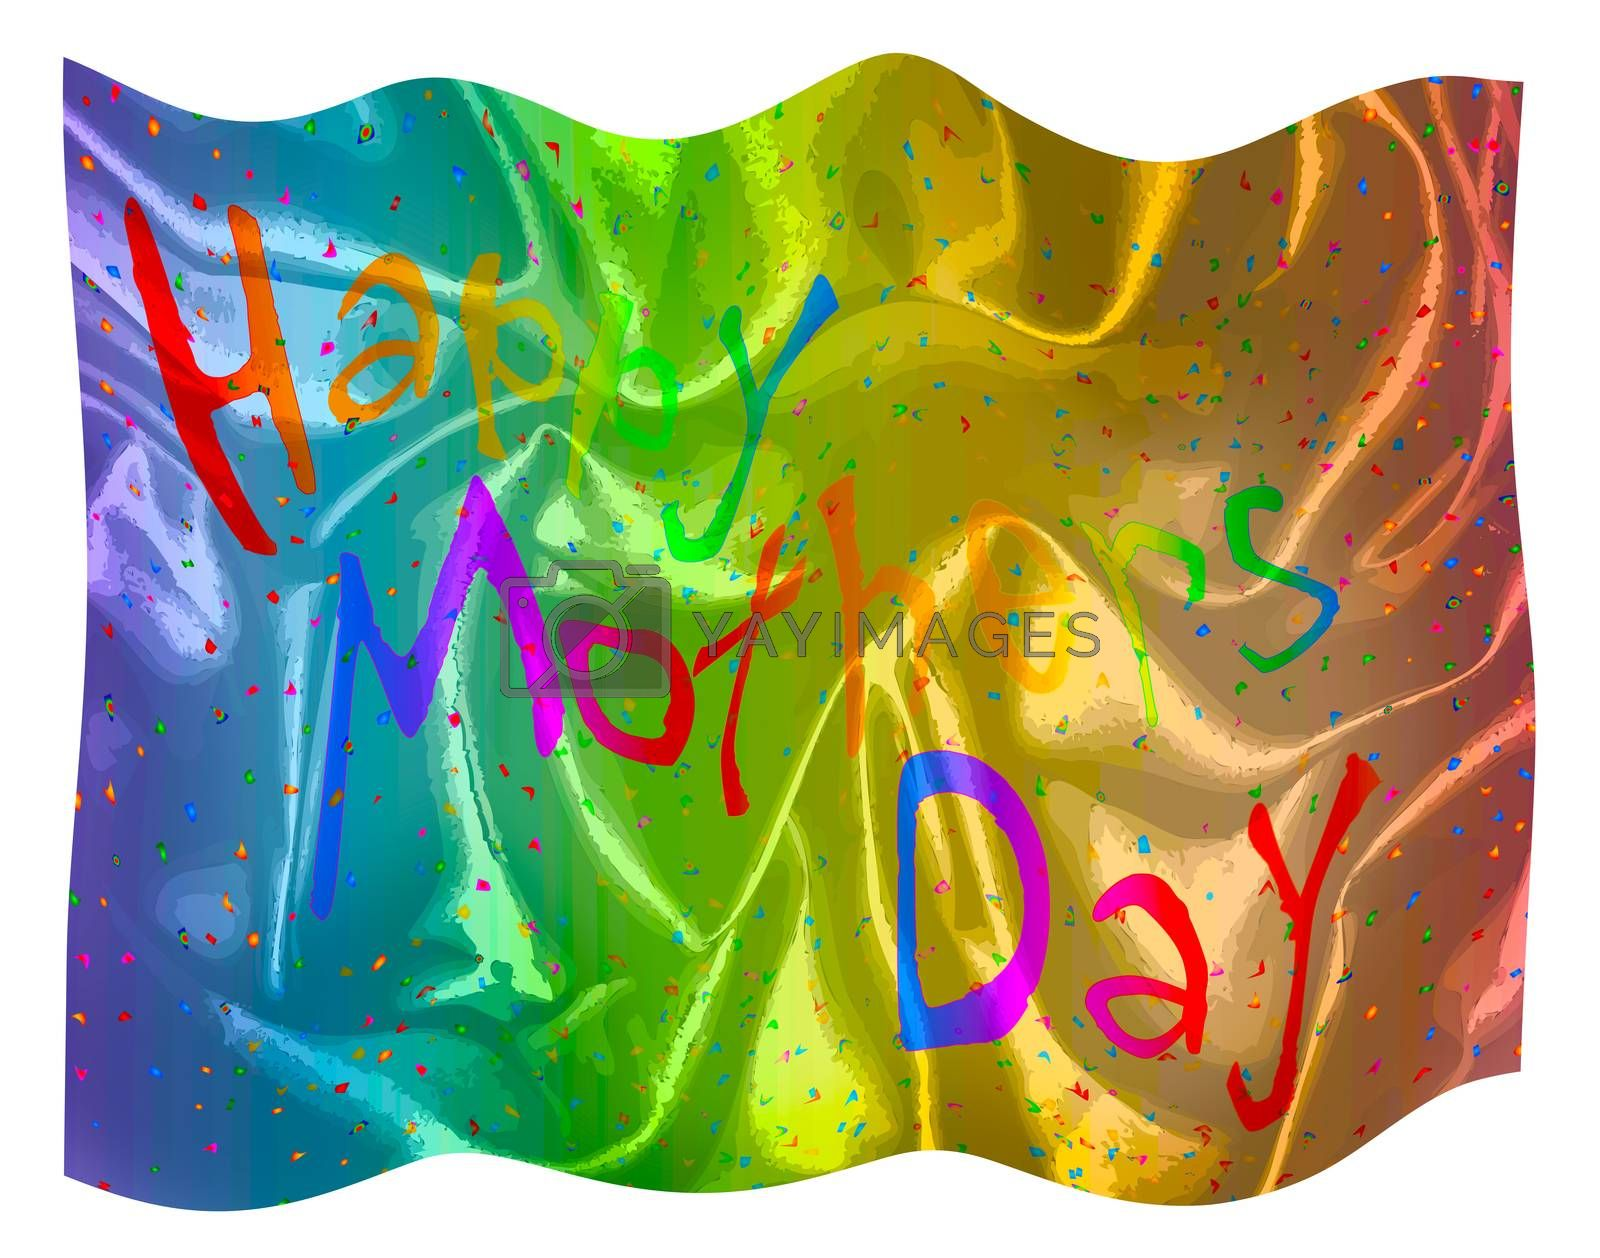 A 'happy mothers day' message in rainbow colours against a confetti rainbow backdrop.